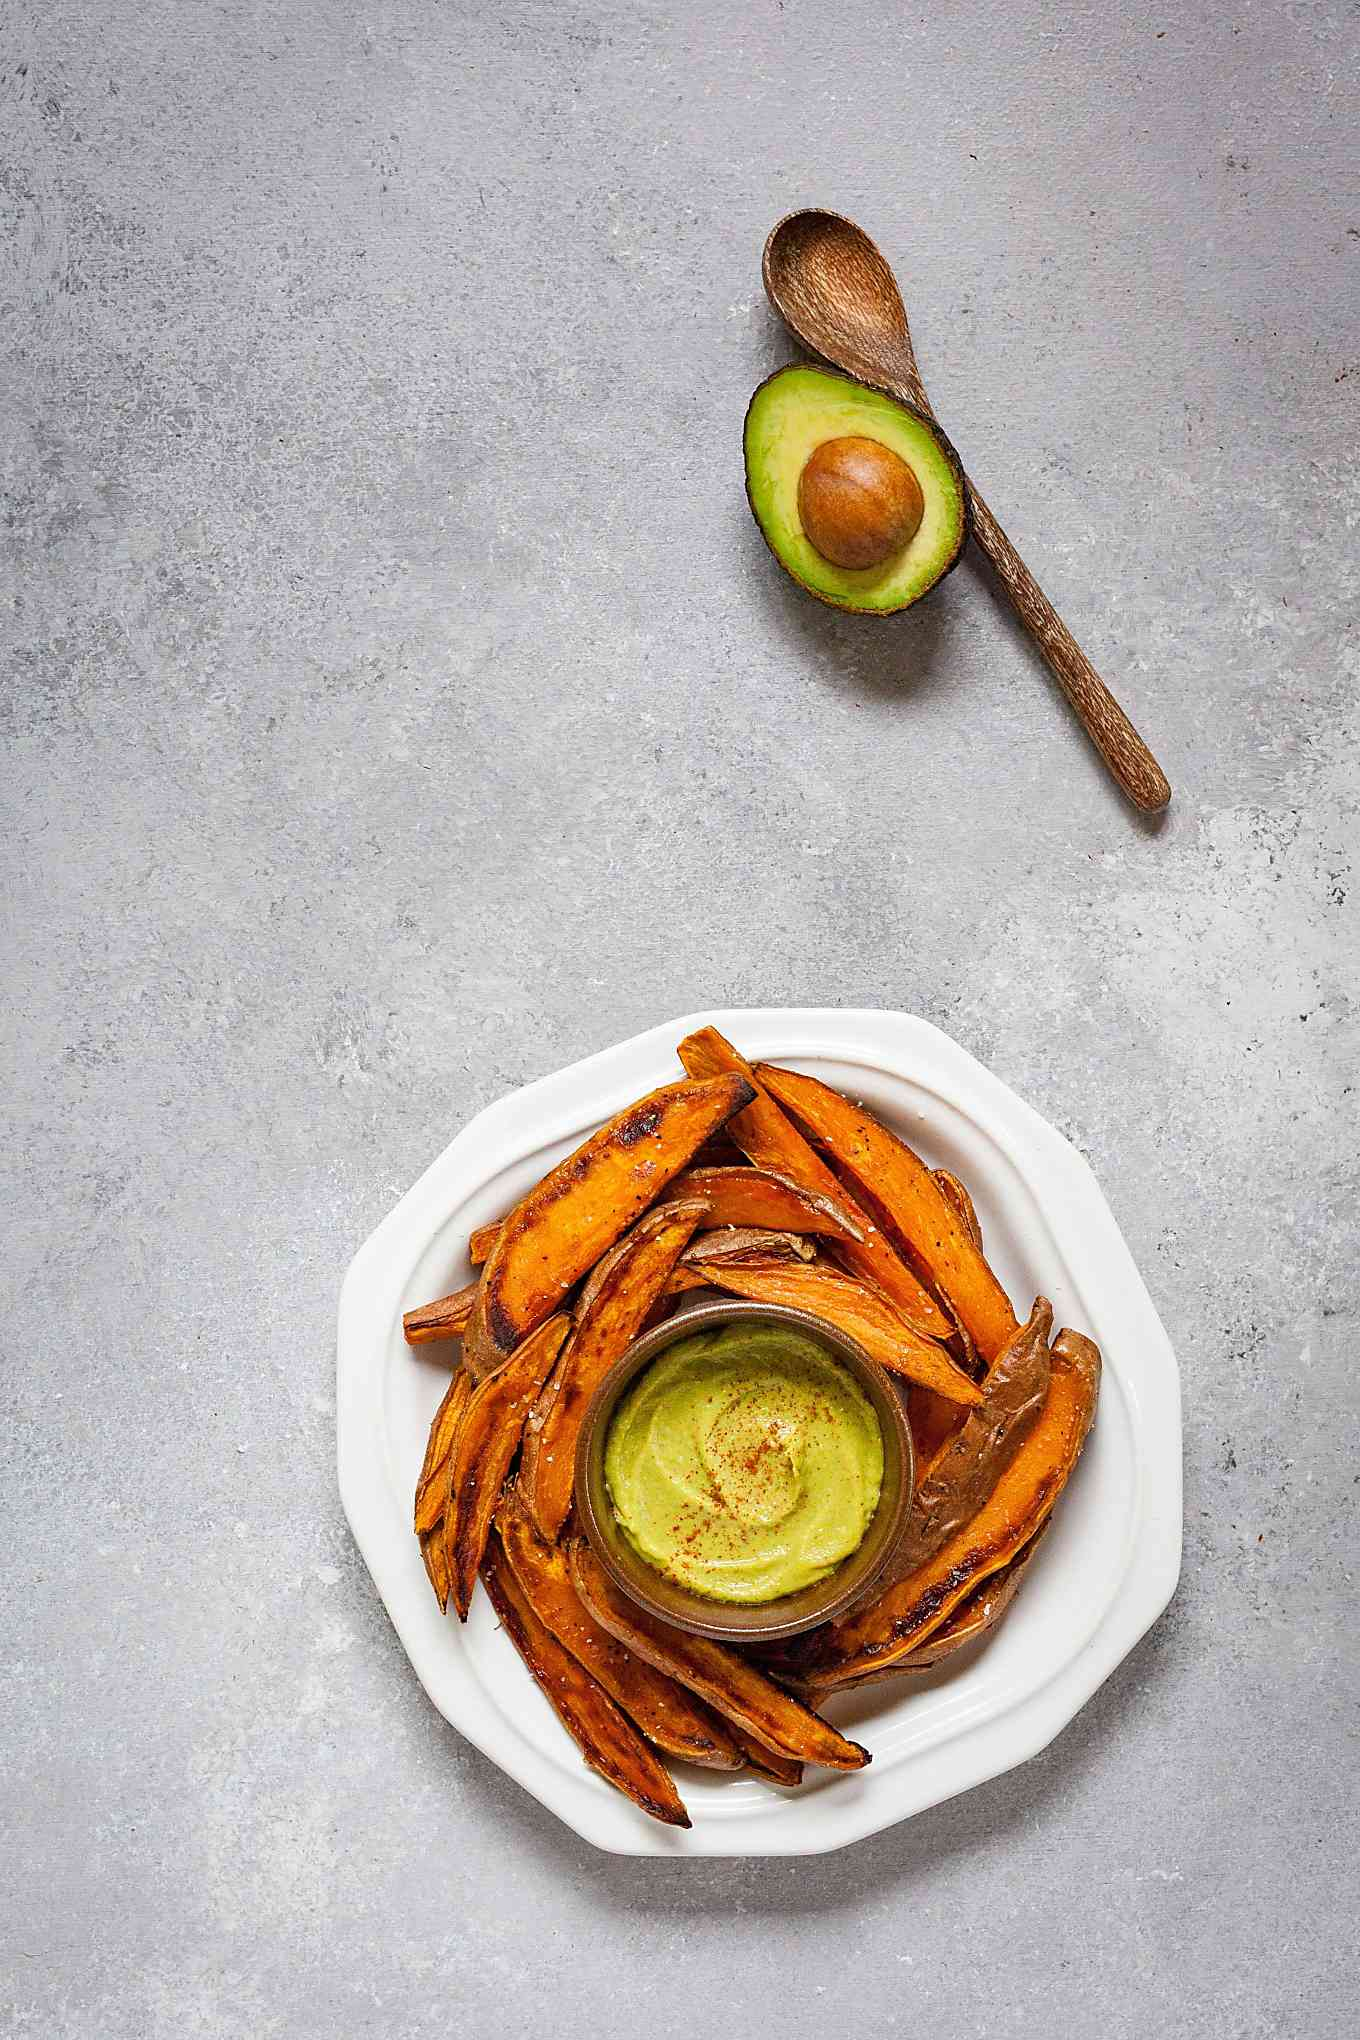 image of wooden spoon and avocado on table with white plate of sweet potato fries and bowl of mustard